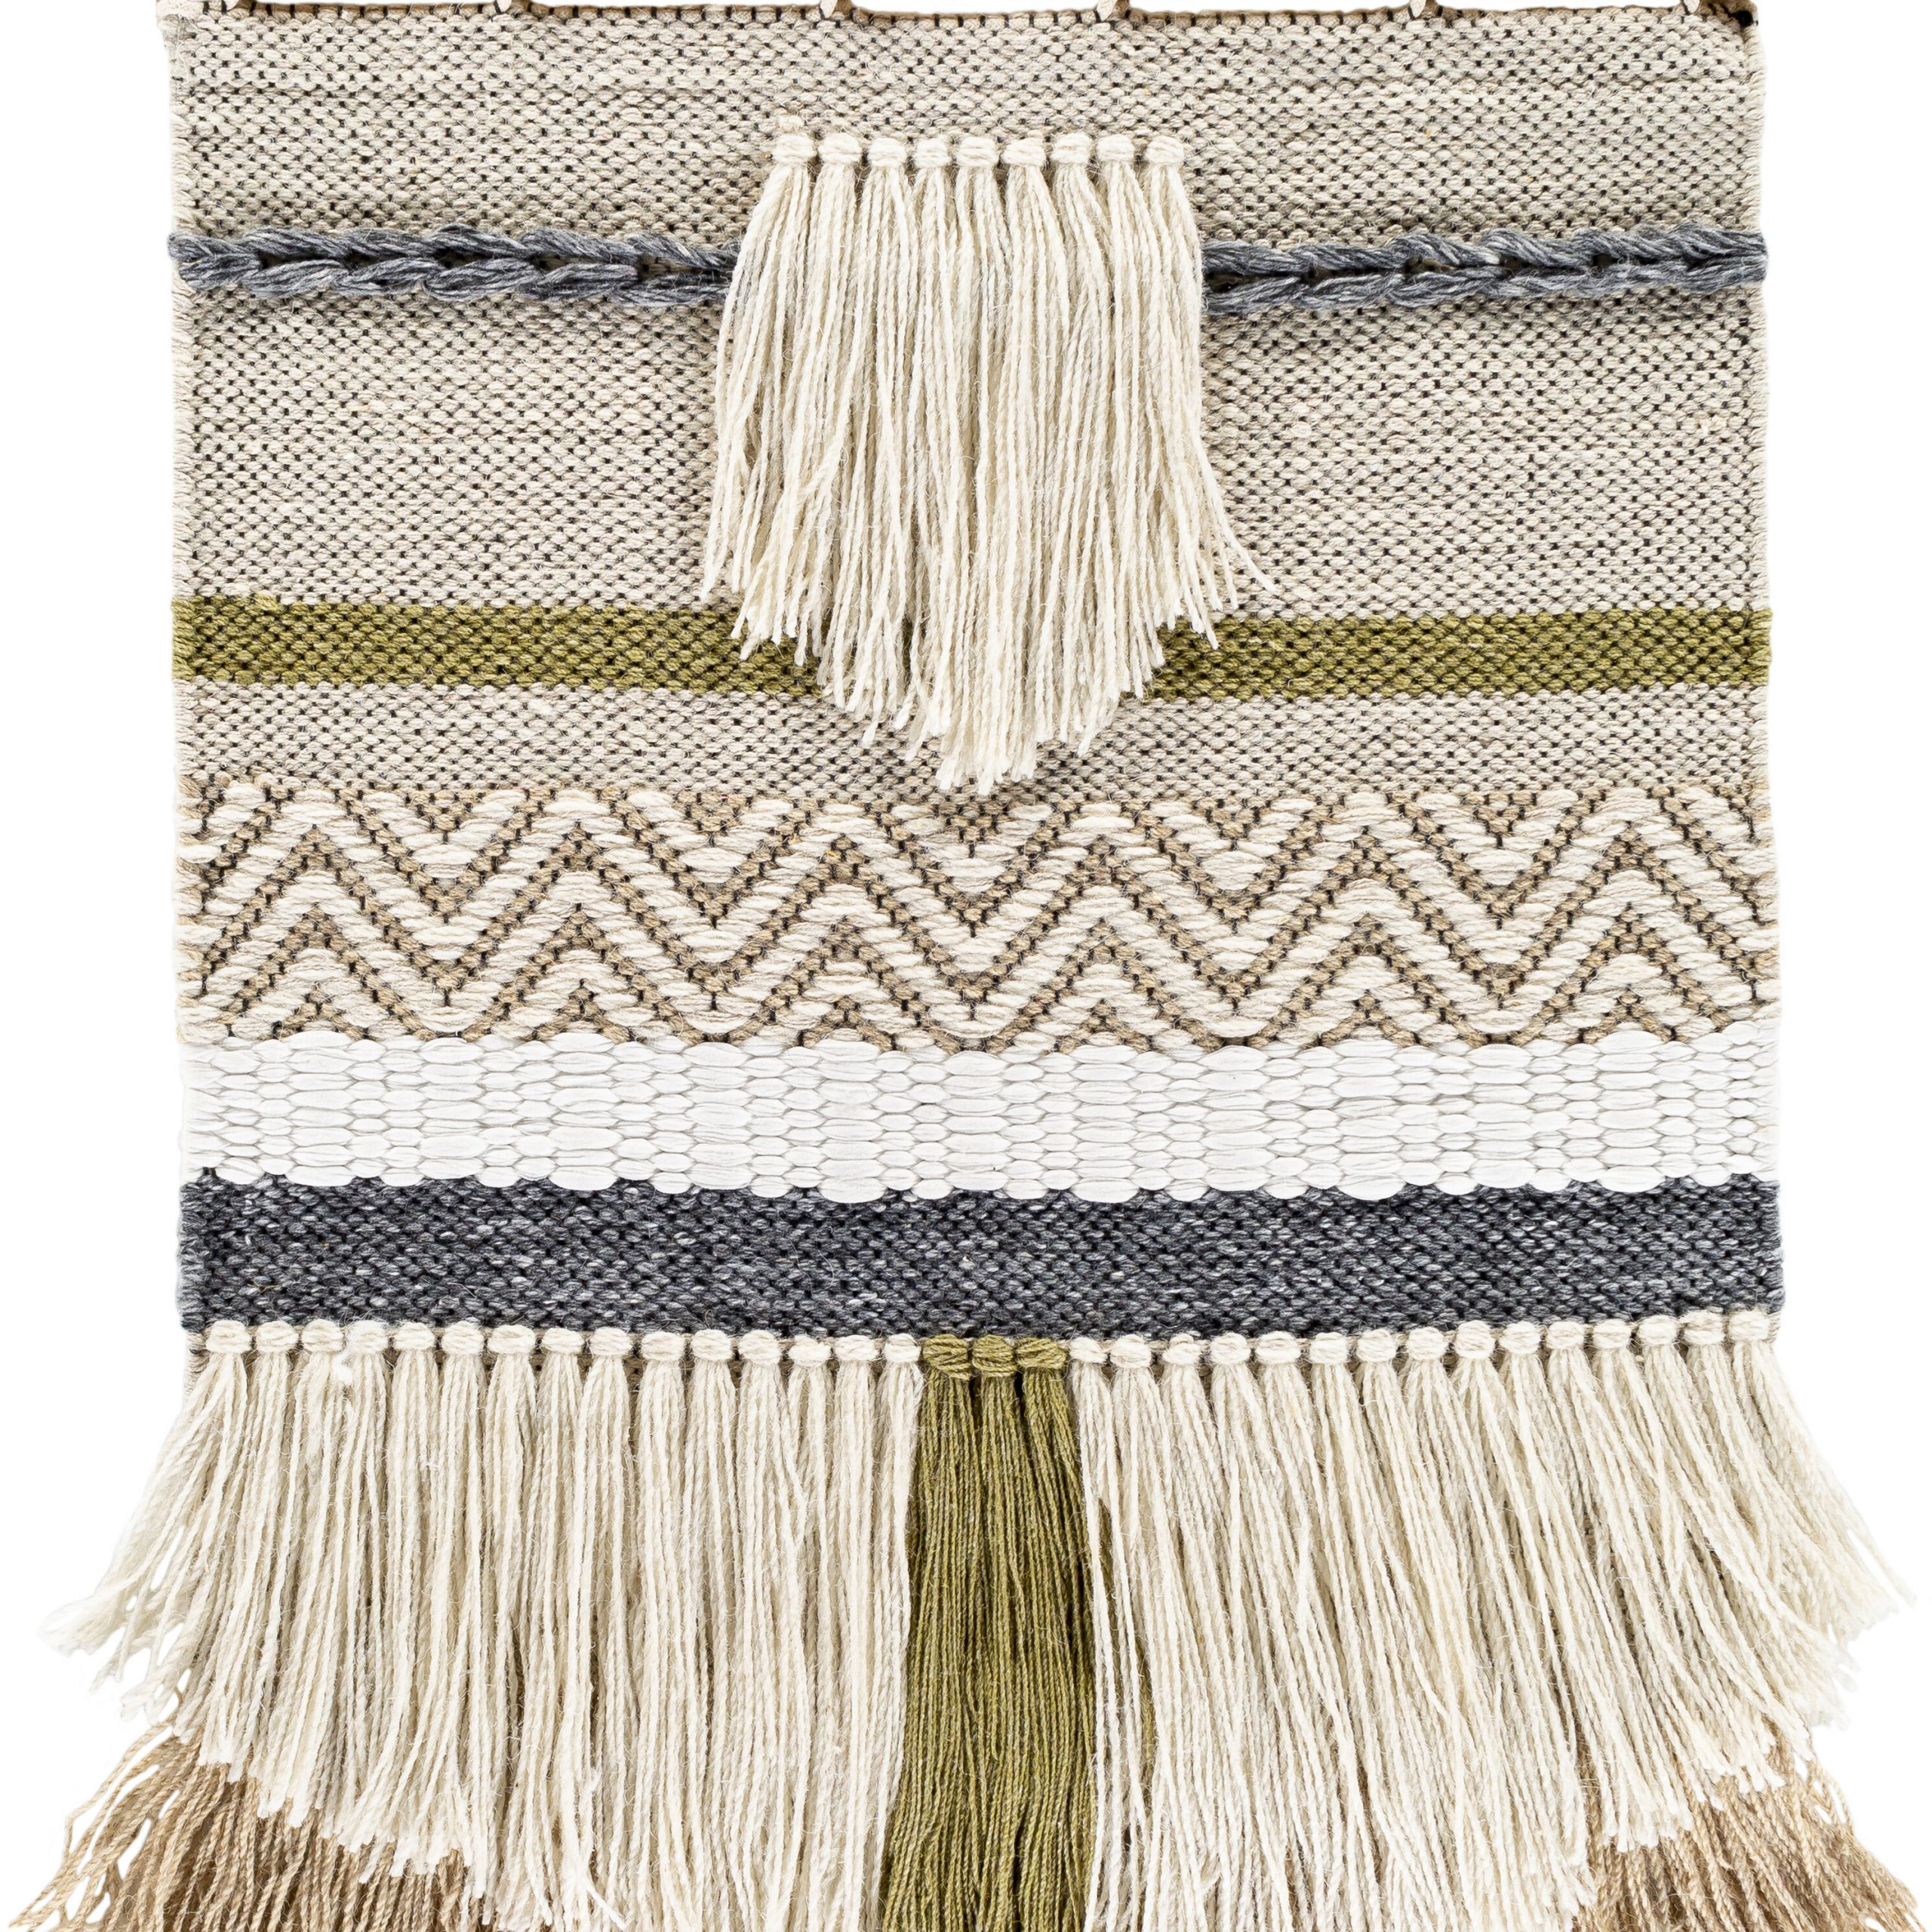 Blended Fabric Saiful Wall Hanging With Rod Intended For 2017 Blended Fabric Fringed Design Woven With Rod (View 2 of 20)